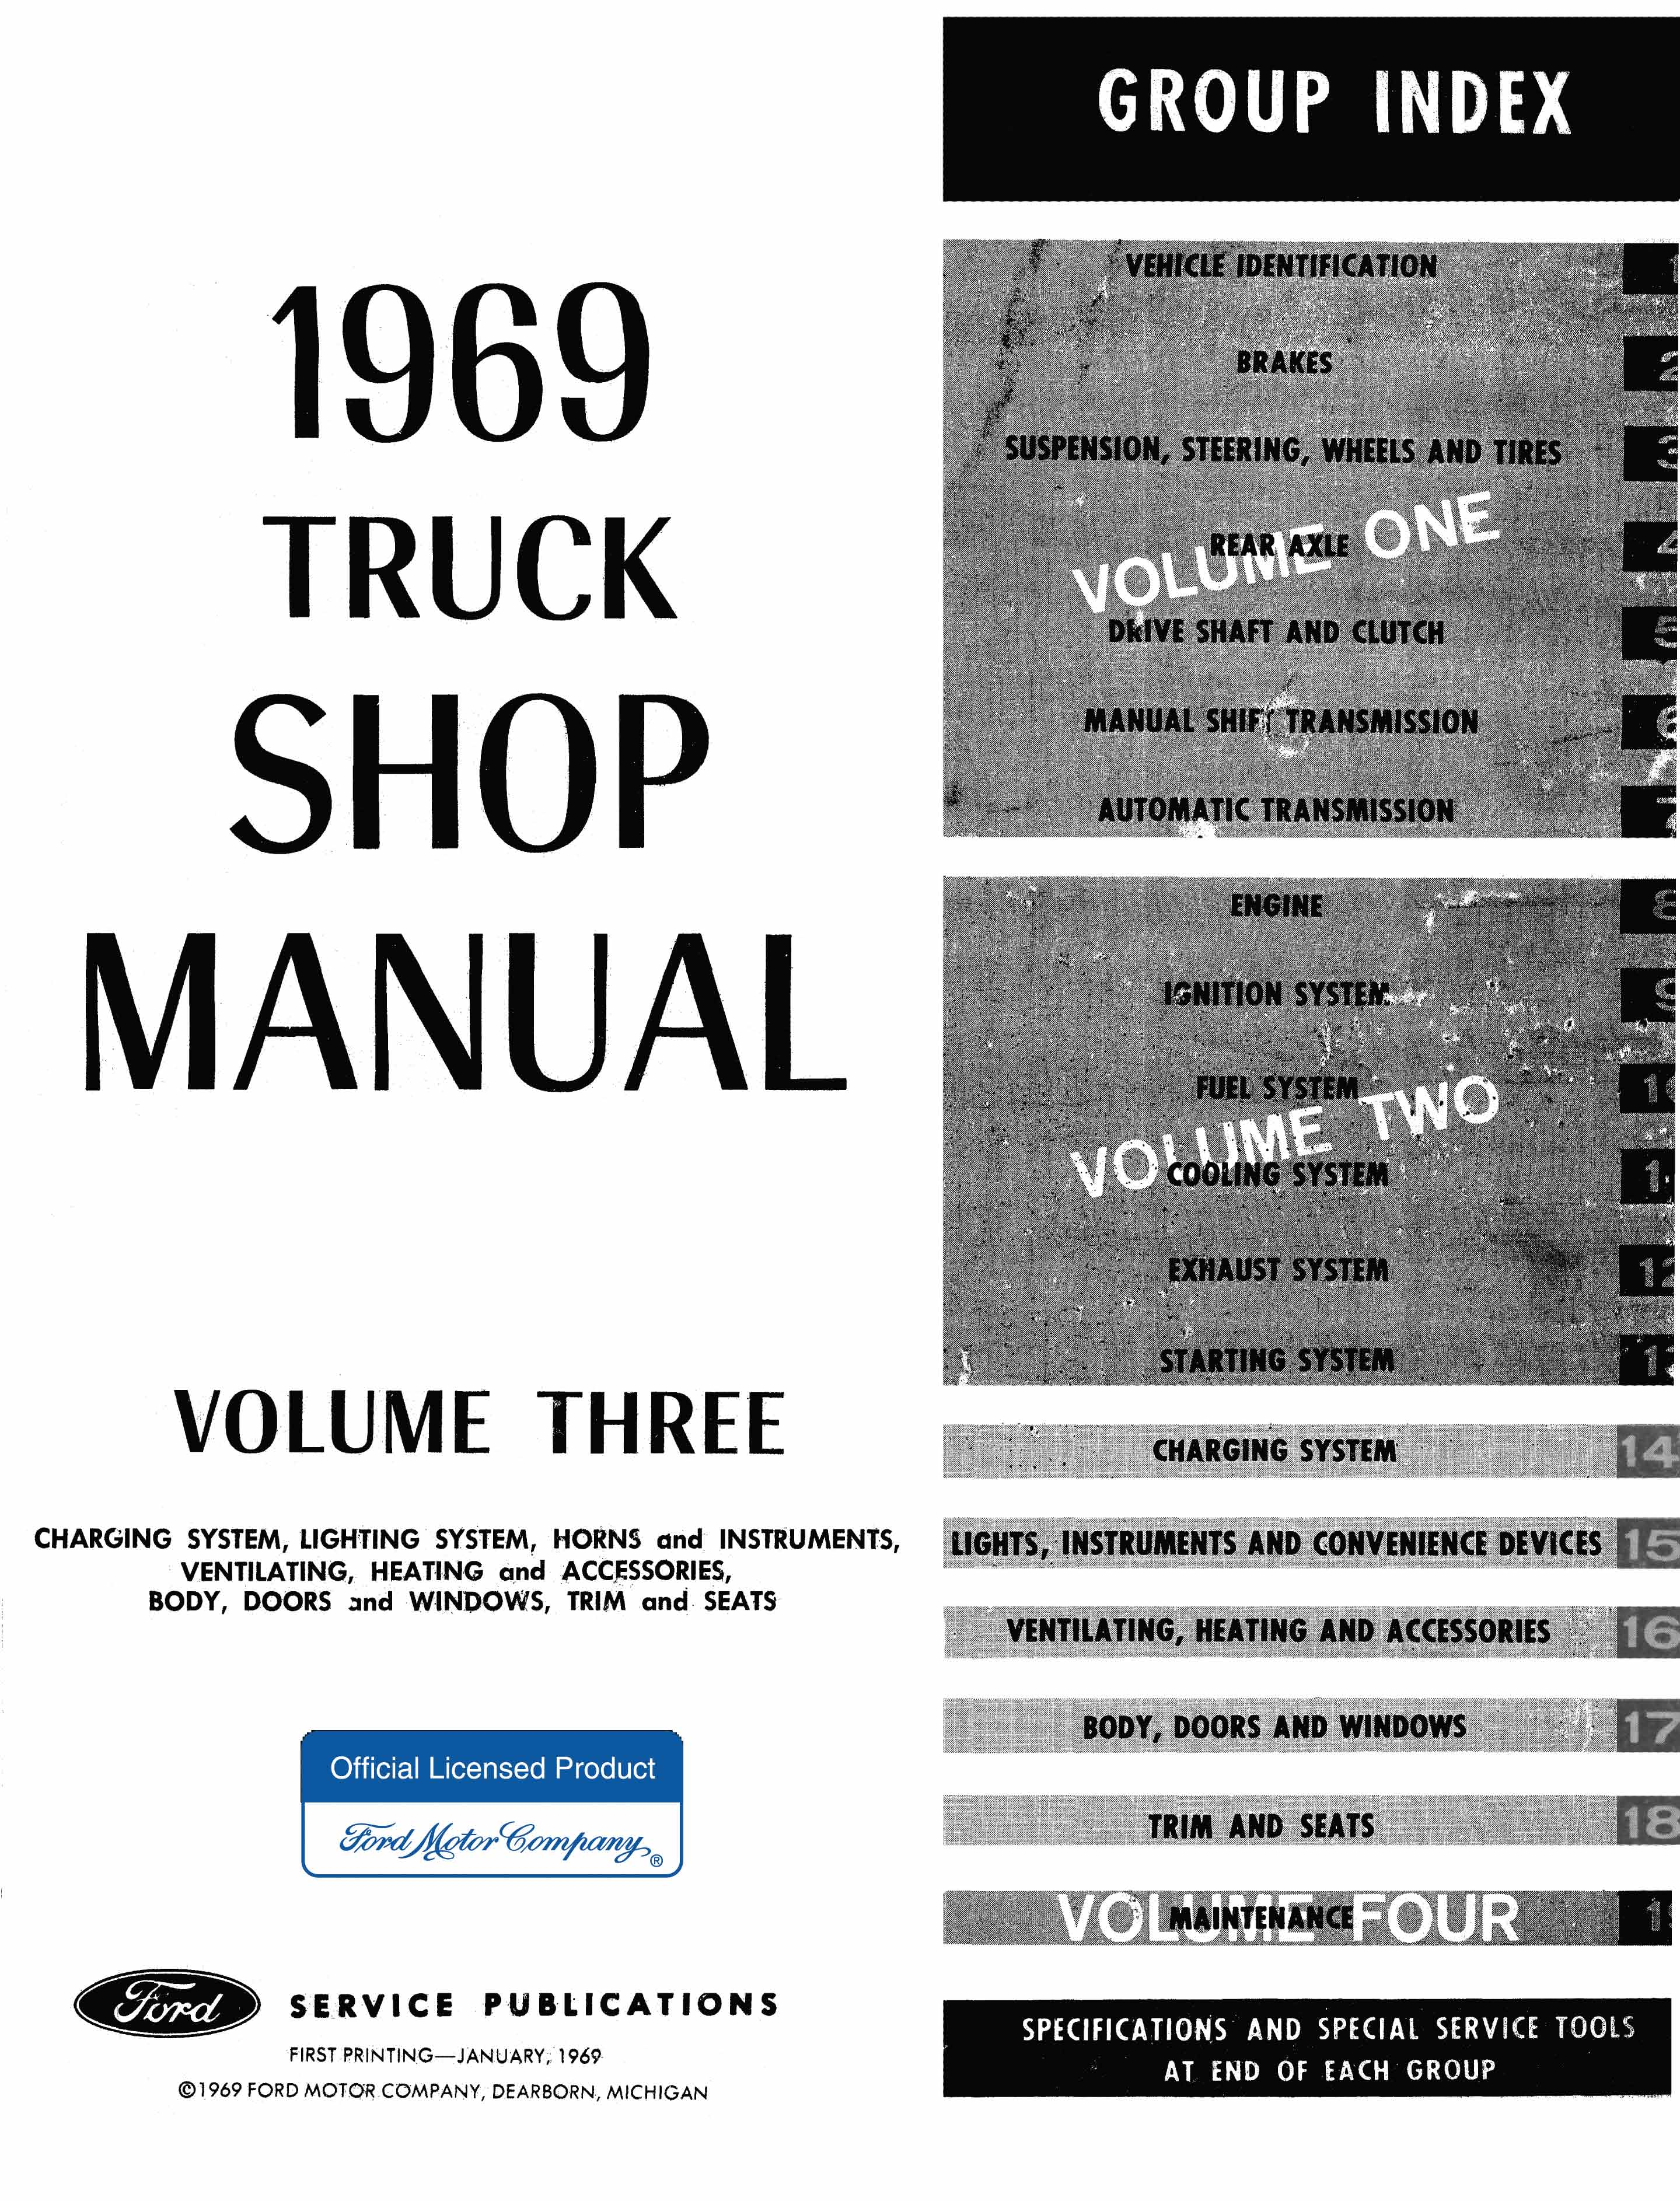 1969 Ford Truck Shop Manual 4 Volume Complete Service Factory N Series Repair